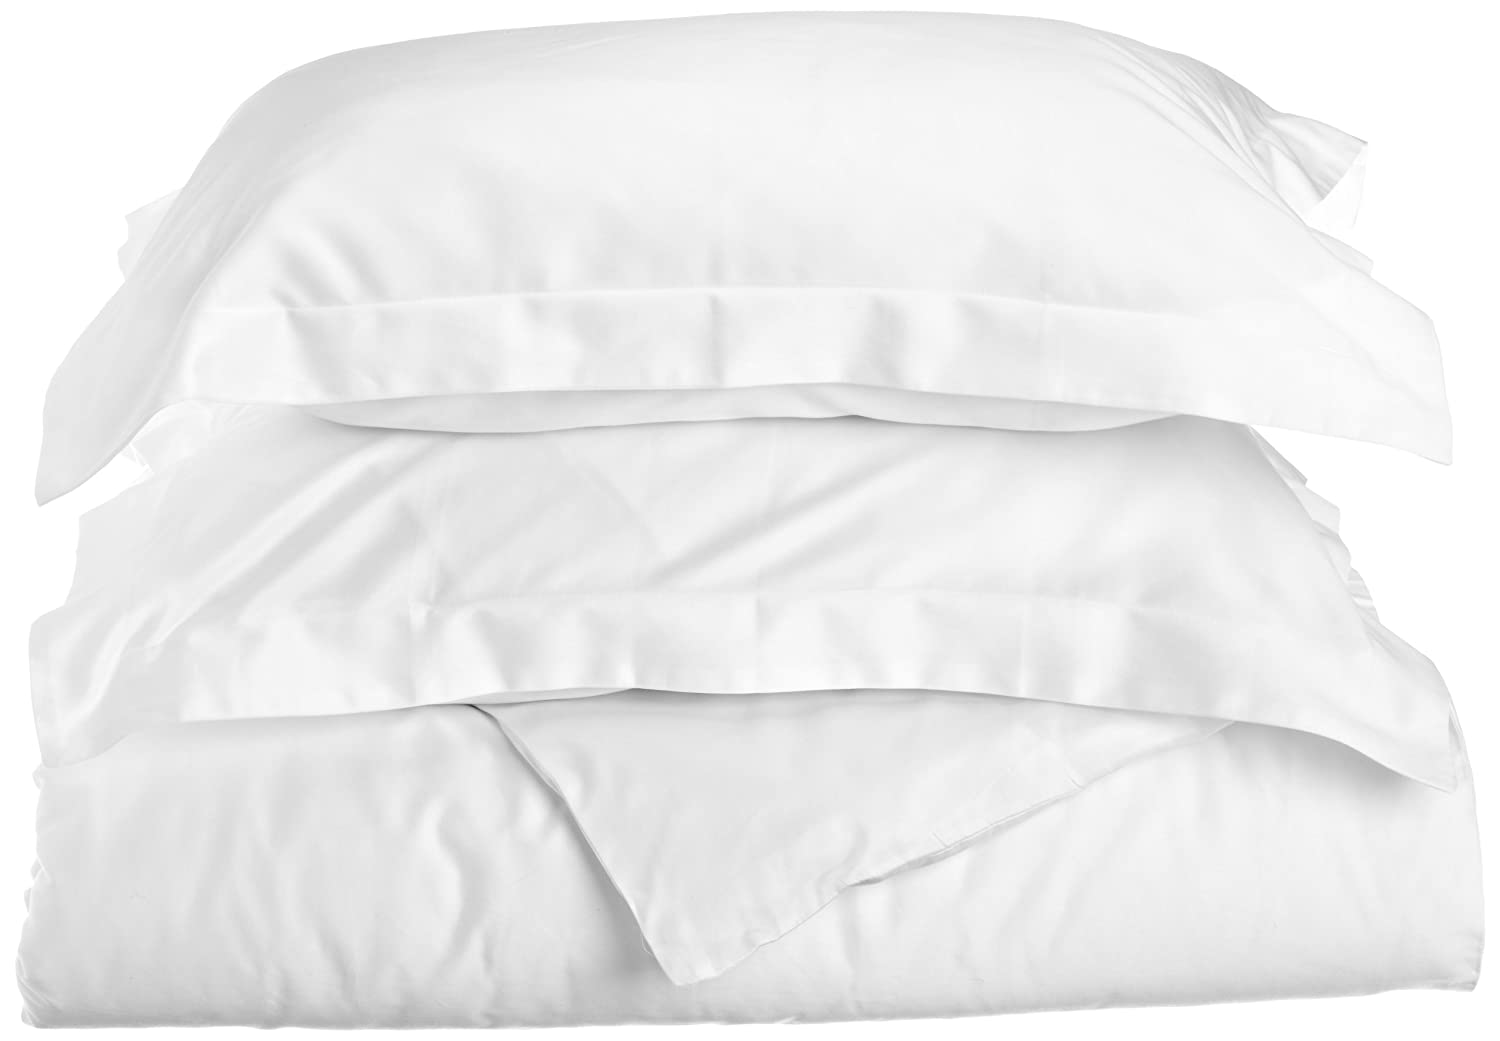 Superior 100% Premium Combed Cotton, Soft Single Ply Sateen, 3-Piece Duvet Cover Set, Solid, King/California King - White